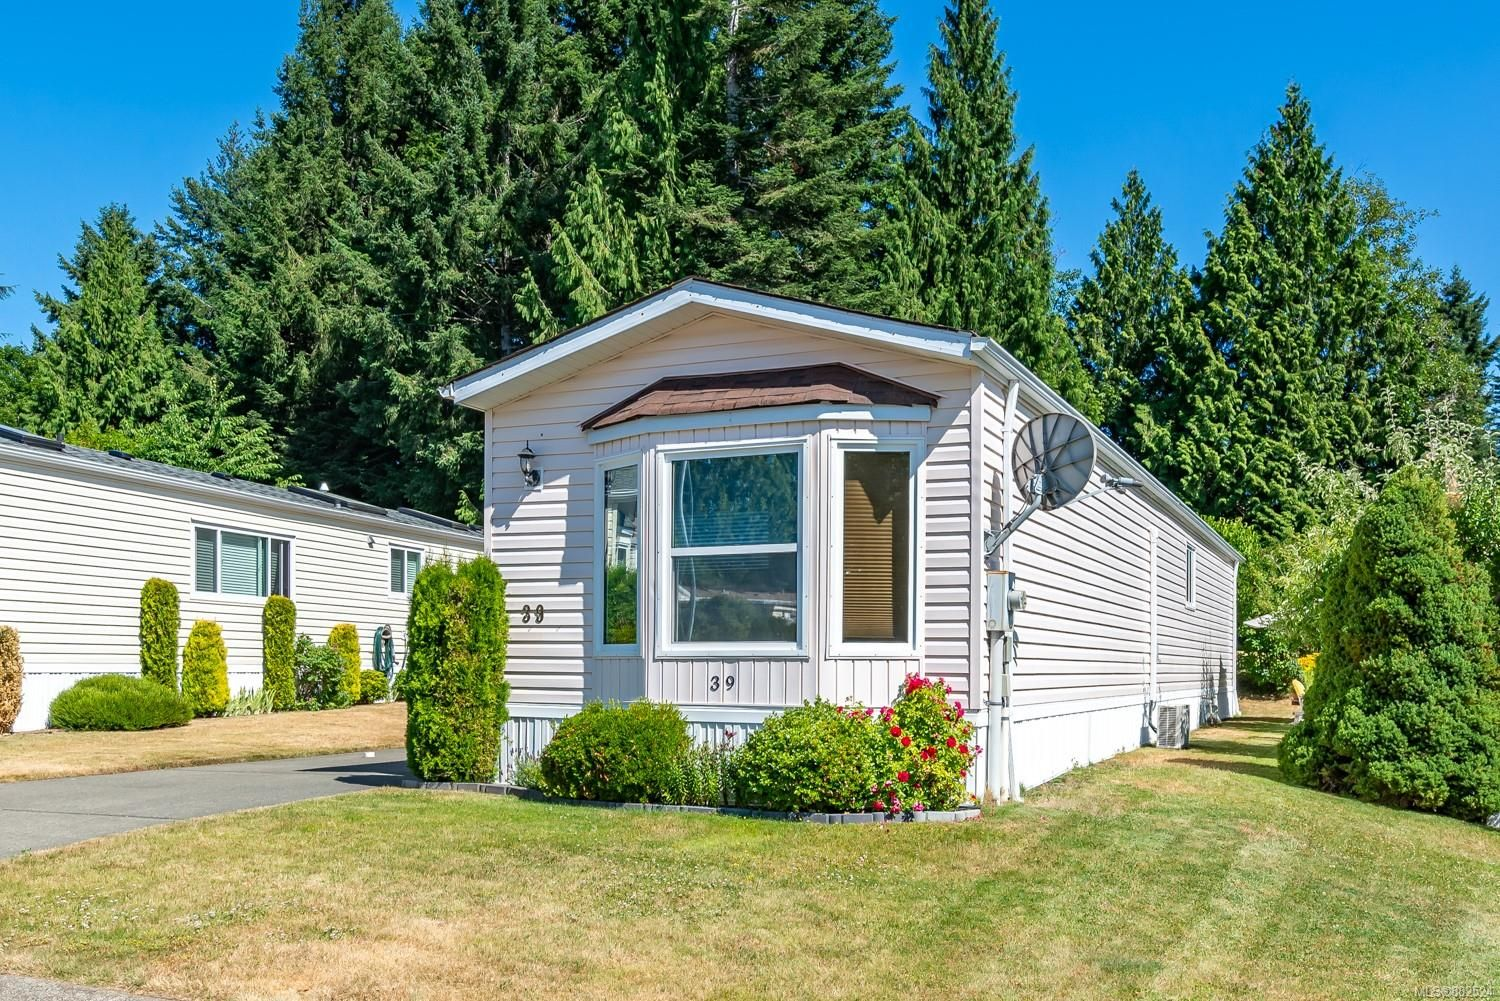 Main Photo: 39 4714 Muir Rd in Courtenay: CV Courtenay East Manufactured Home for sale (Comox Valley)  : MLS®# 882524